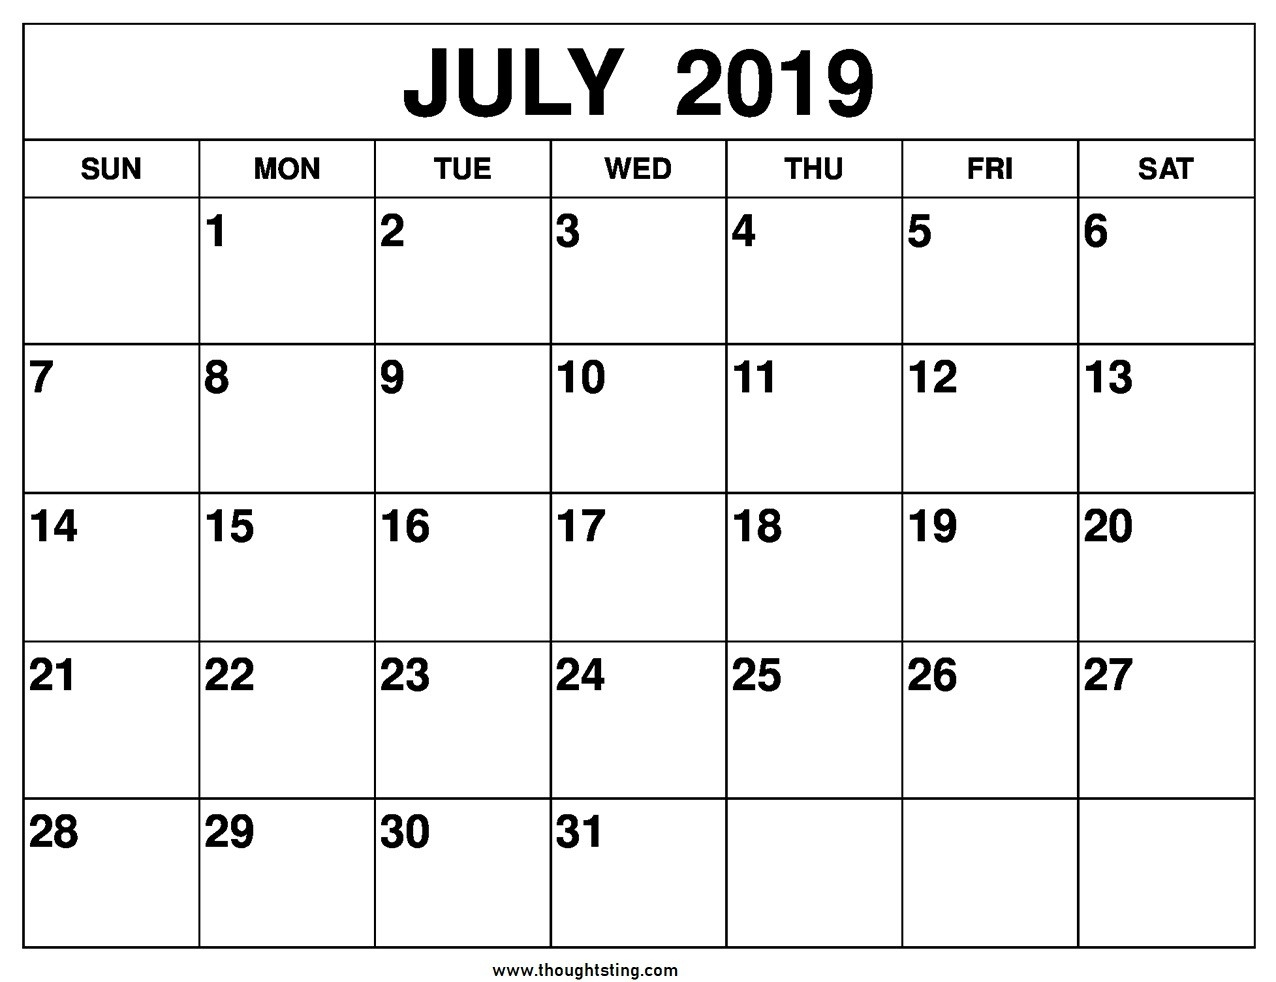 July 2019 Calendar Printable One Page Template - Free  Full Page Calender